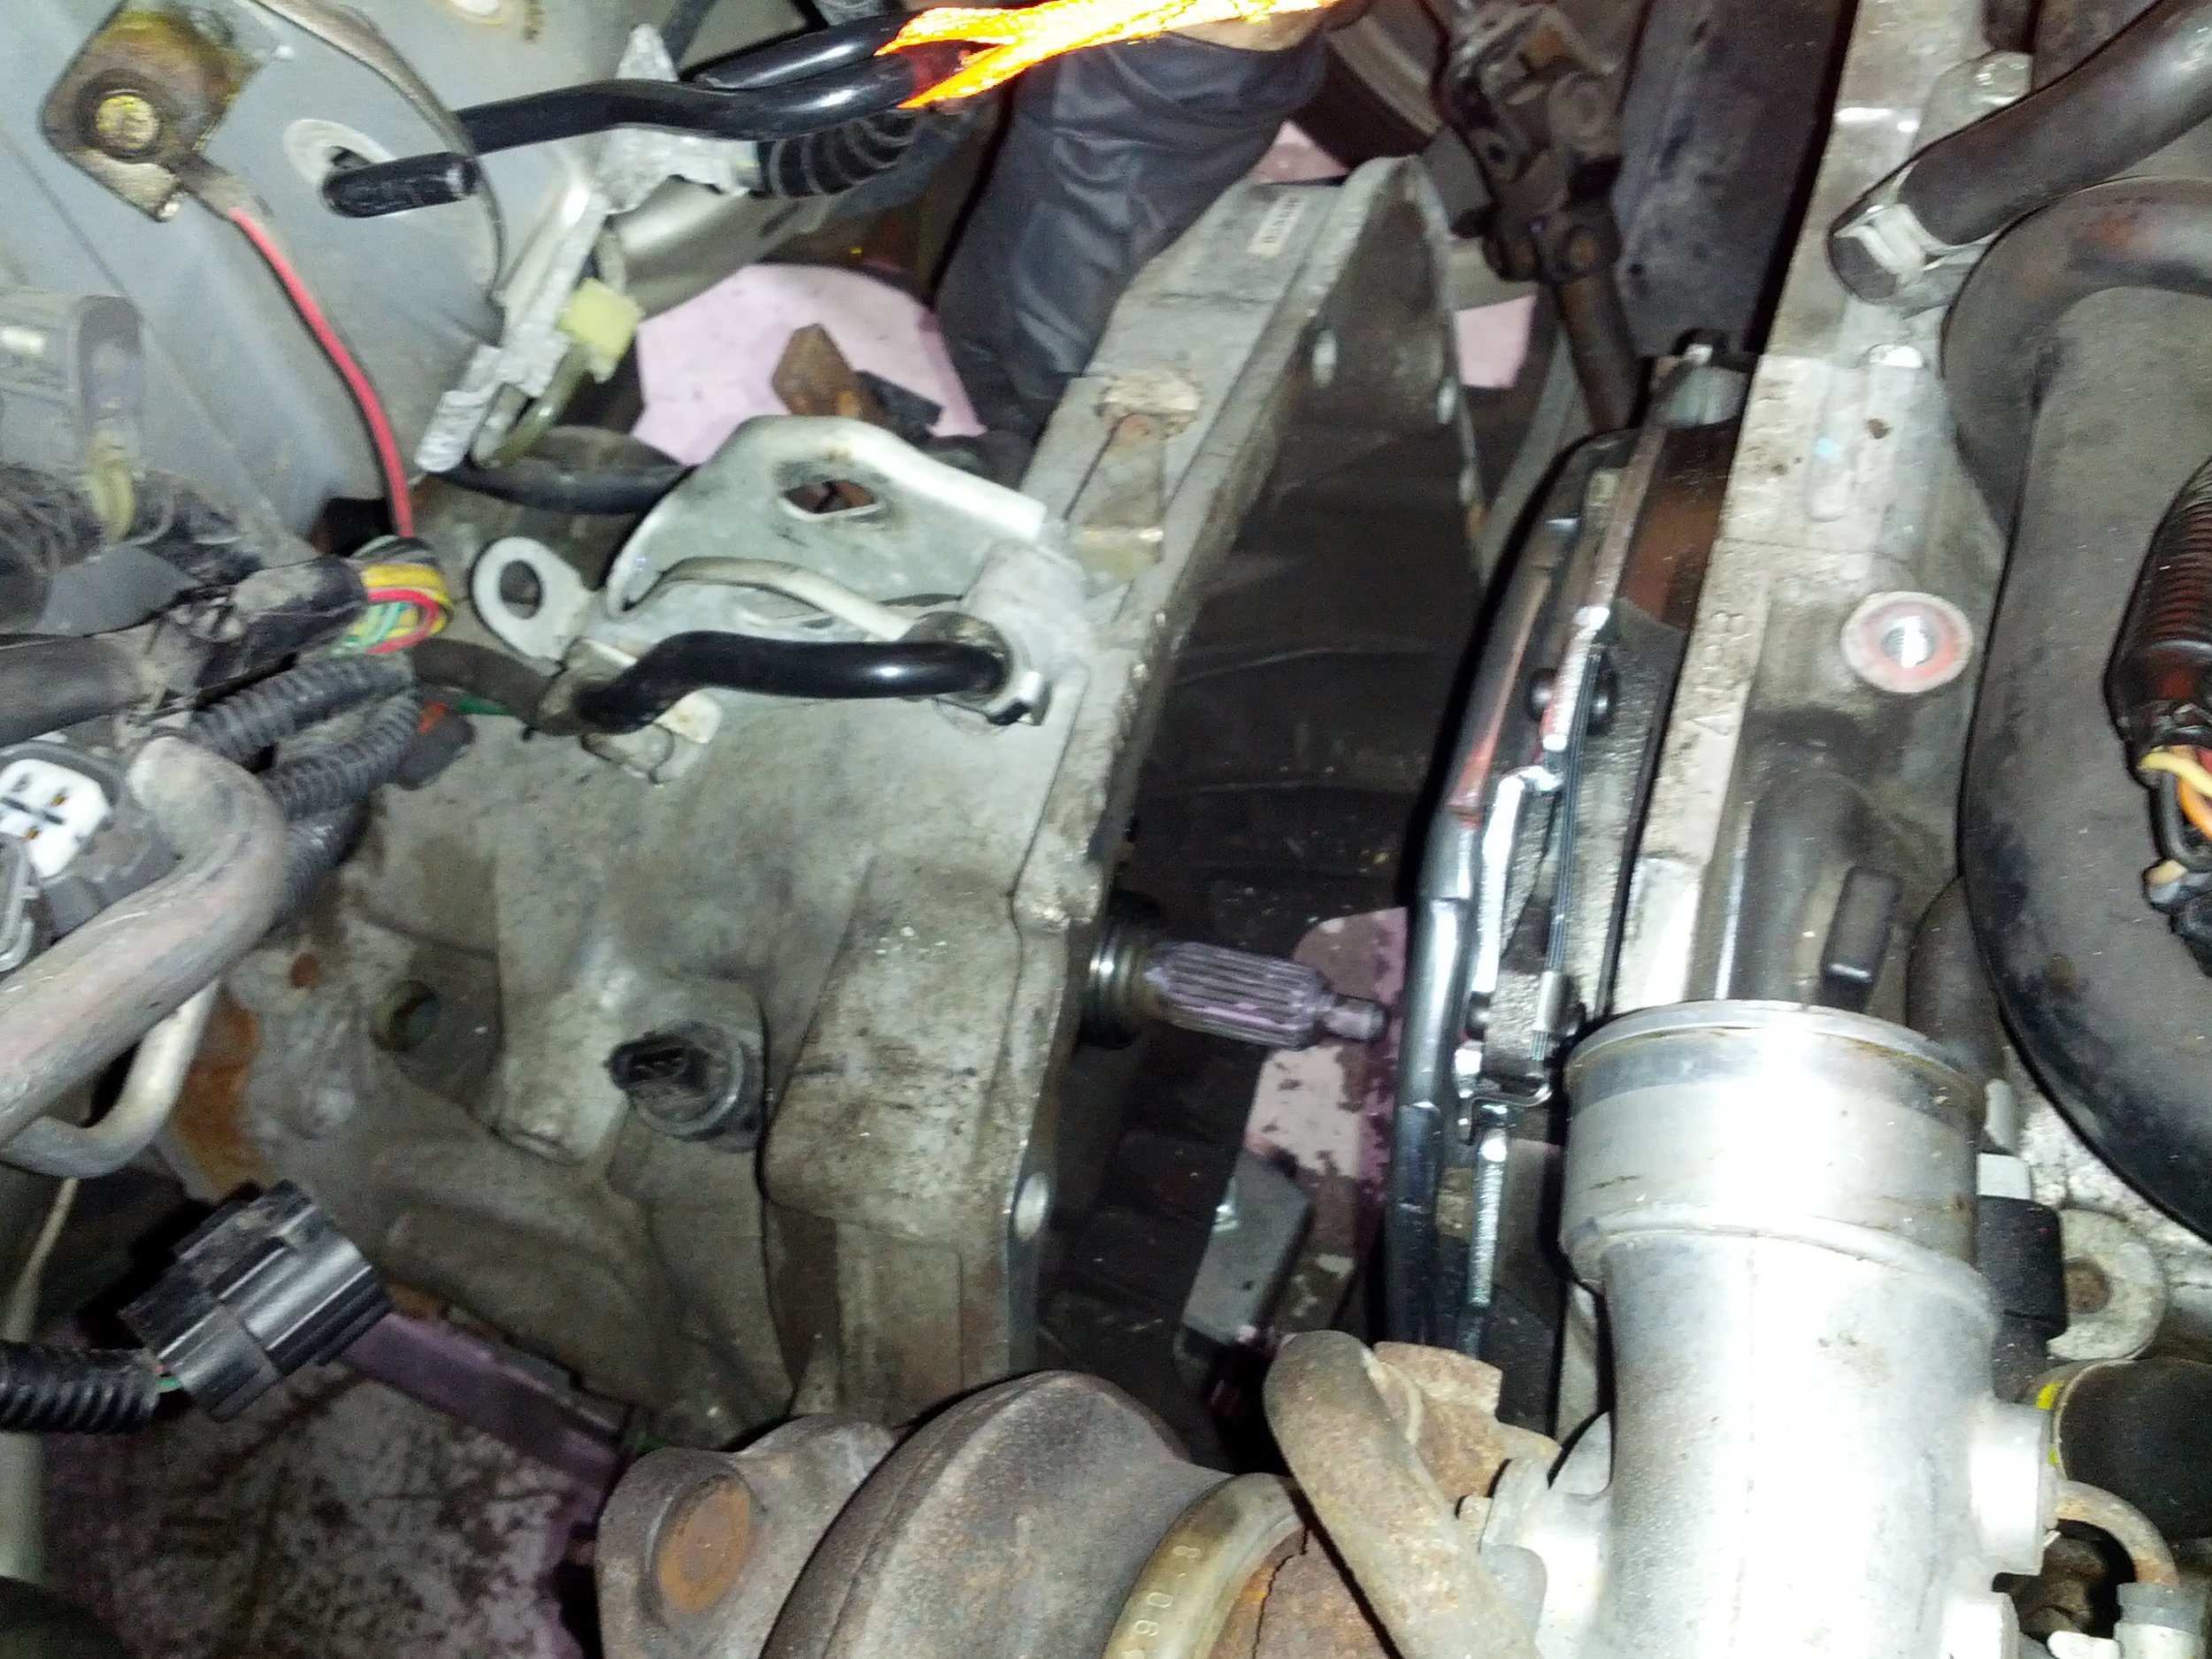 Lazy way to swap the clutch out. Just move the trans back and the engine a bit forward. Sneak it in.